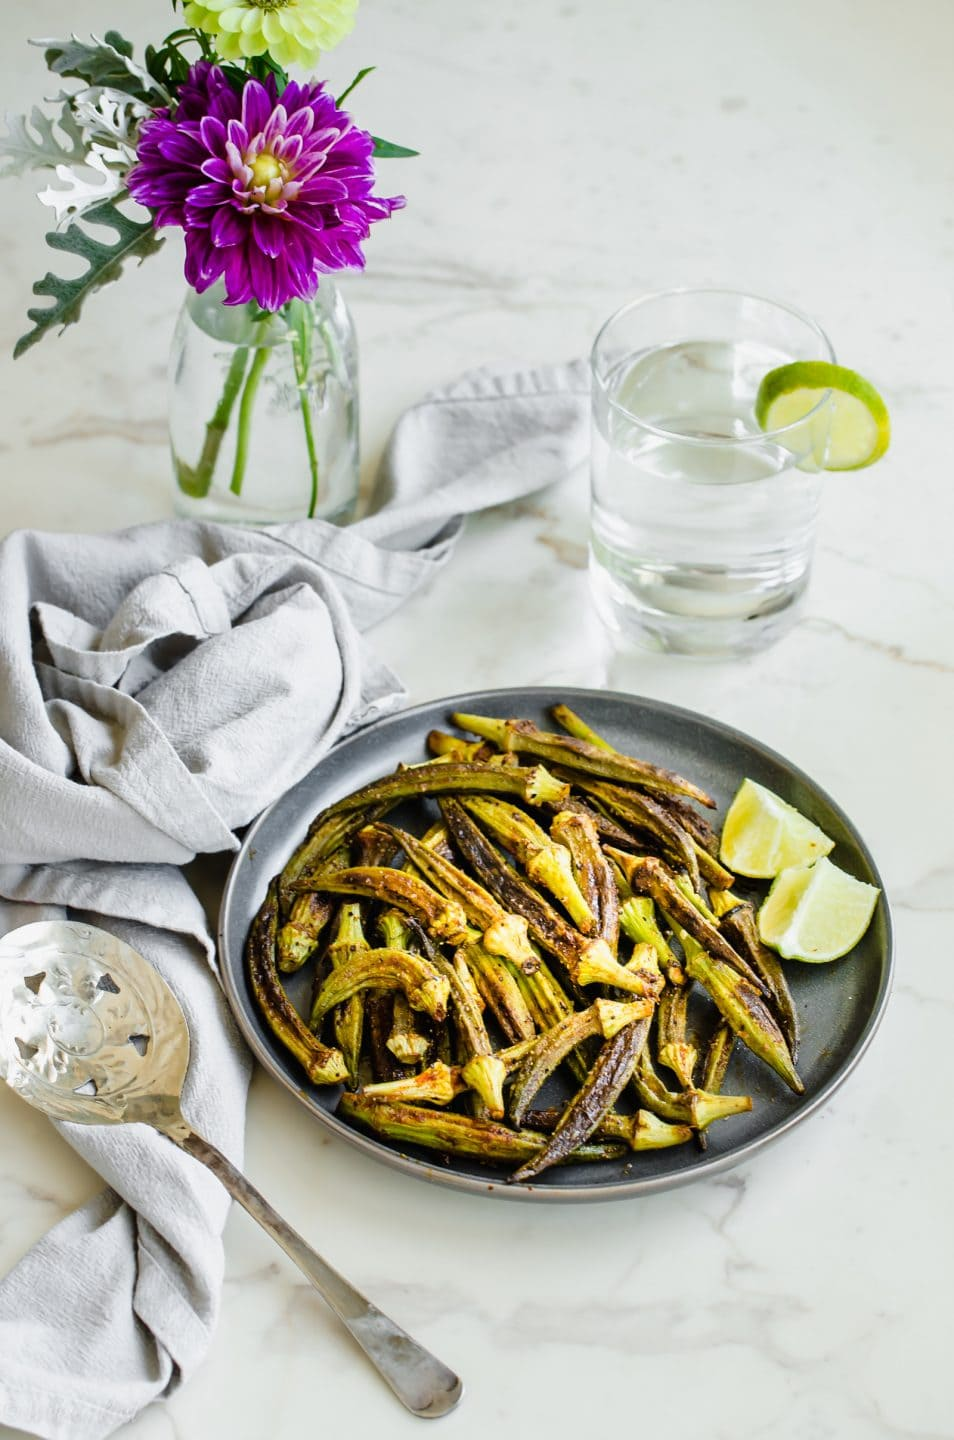 A gray plate with roasted okra and some fresh lime wedges on a white counter top.